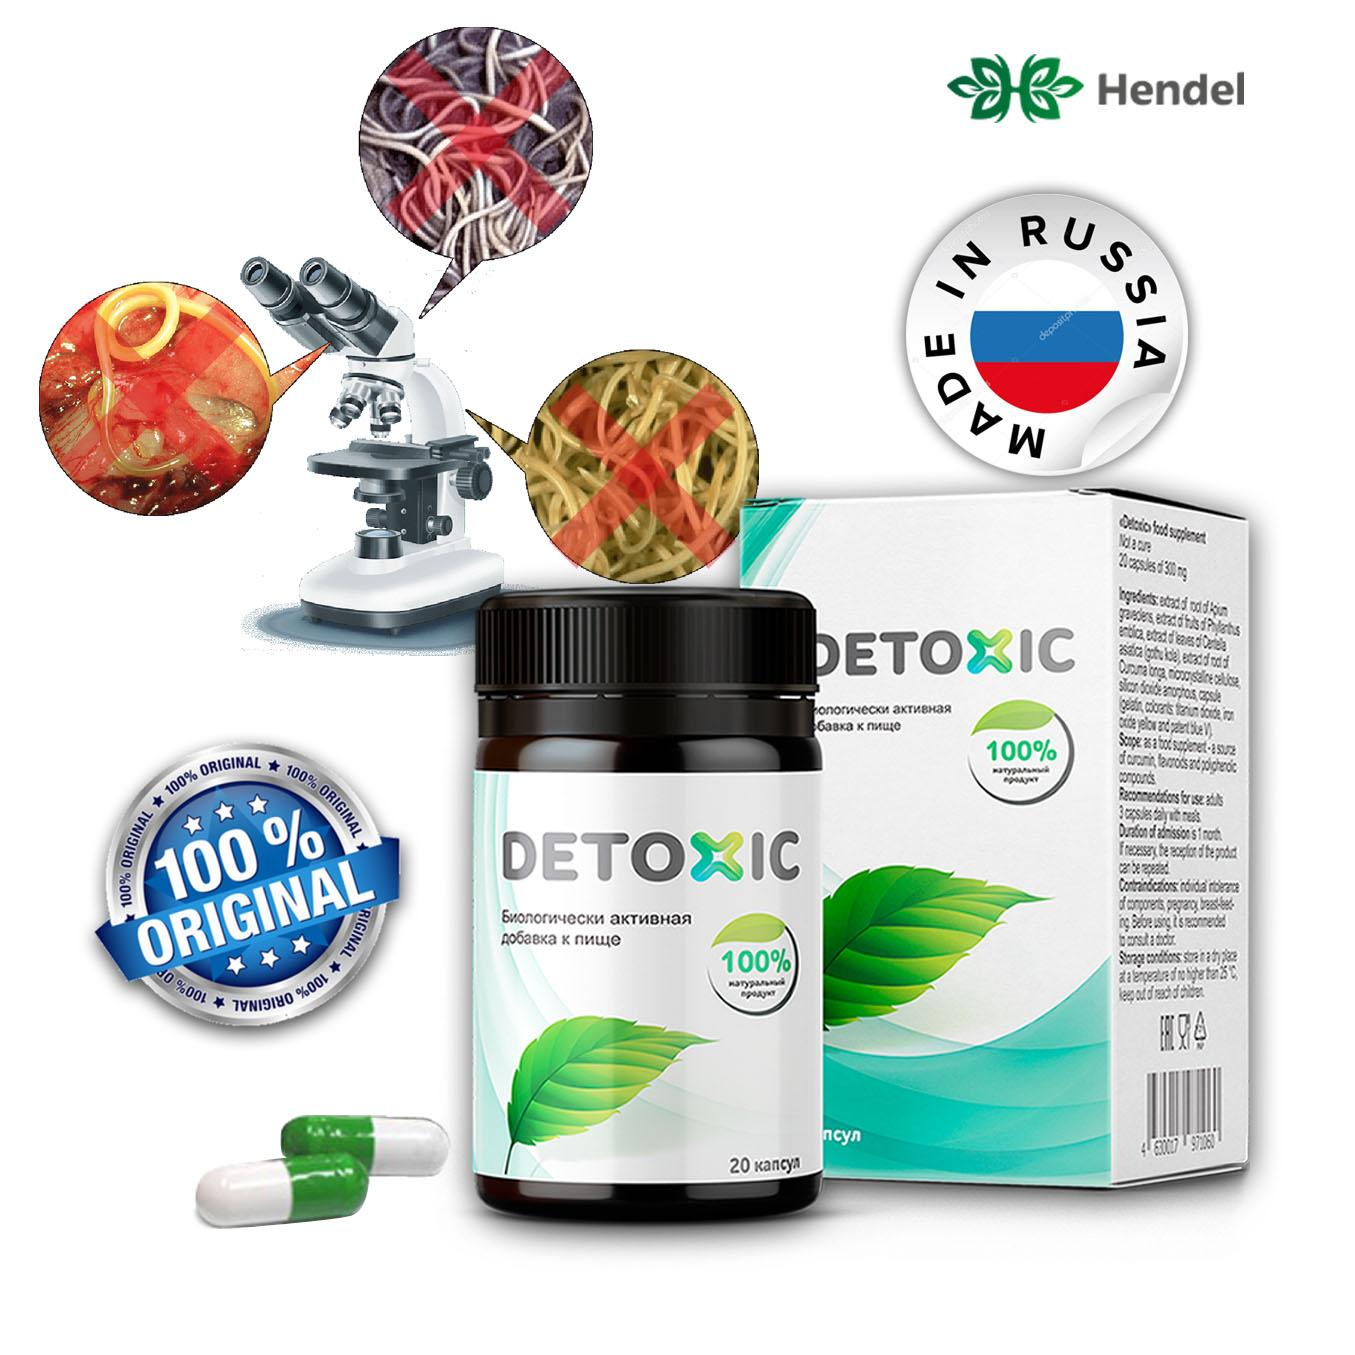 Detoxic in capsules biologically active dietary supplement